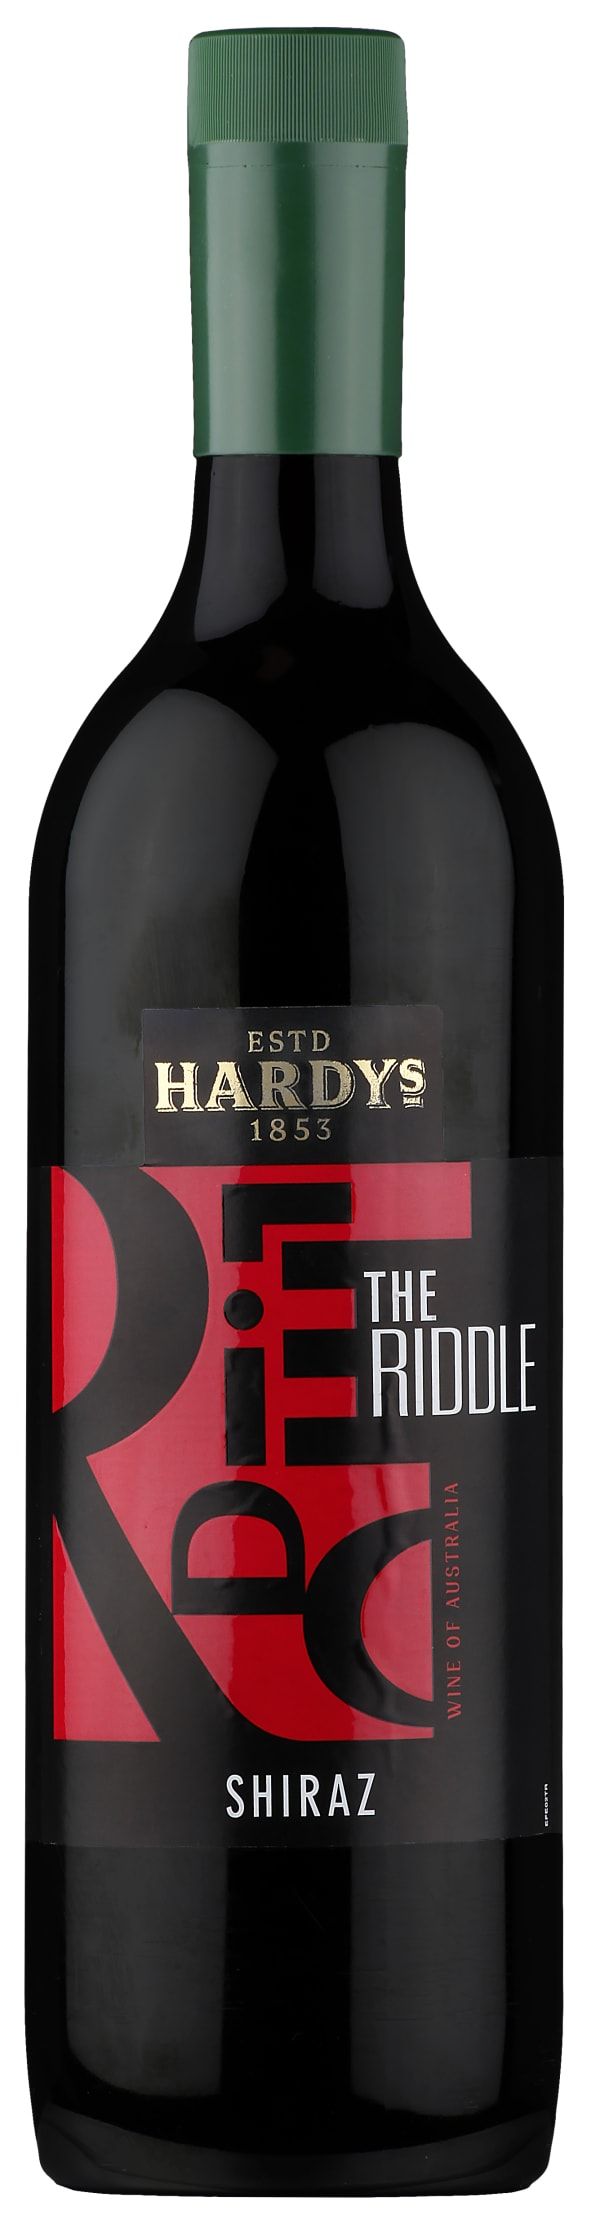 Hardys The Riddle Shiraz 2016 plastflaska